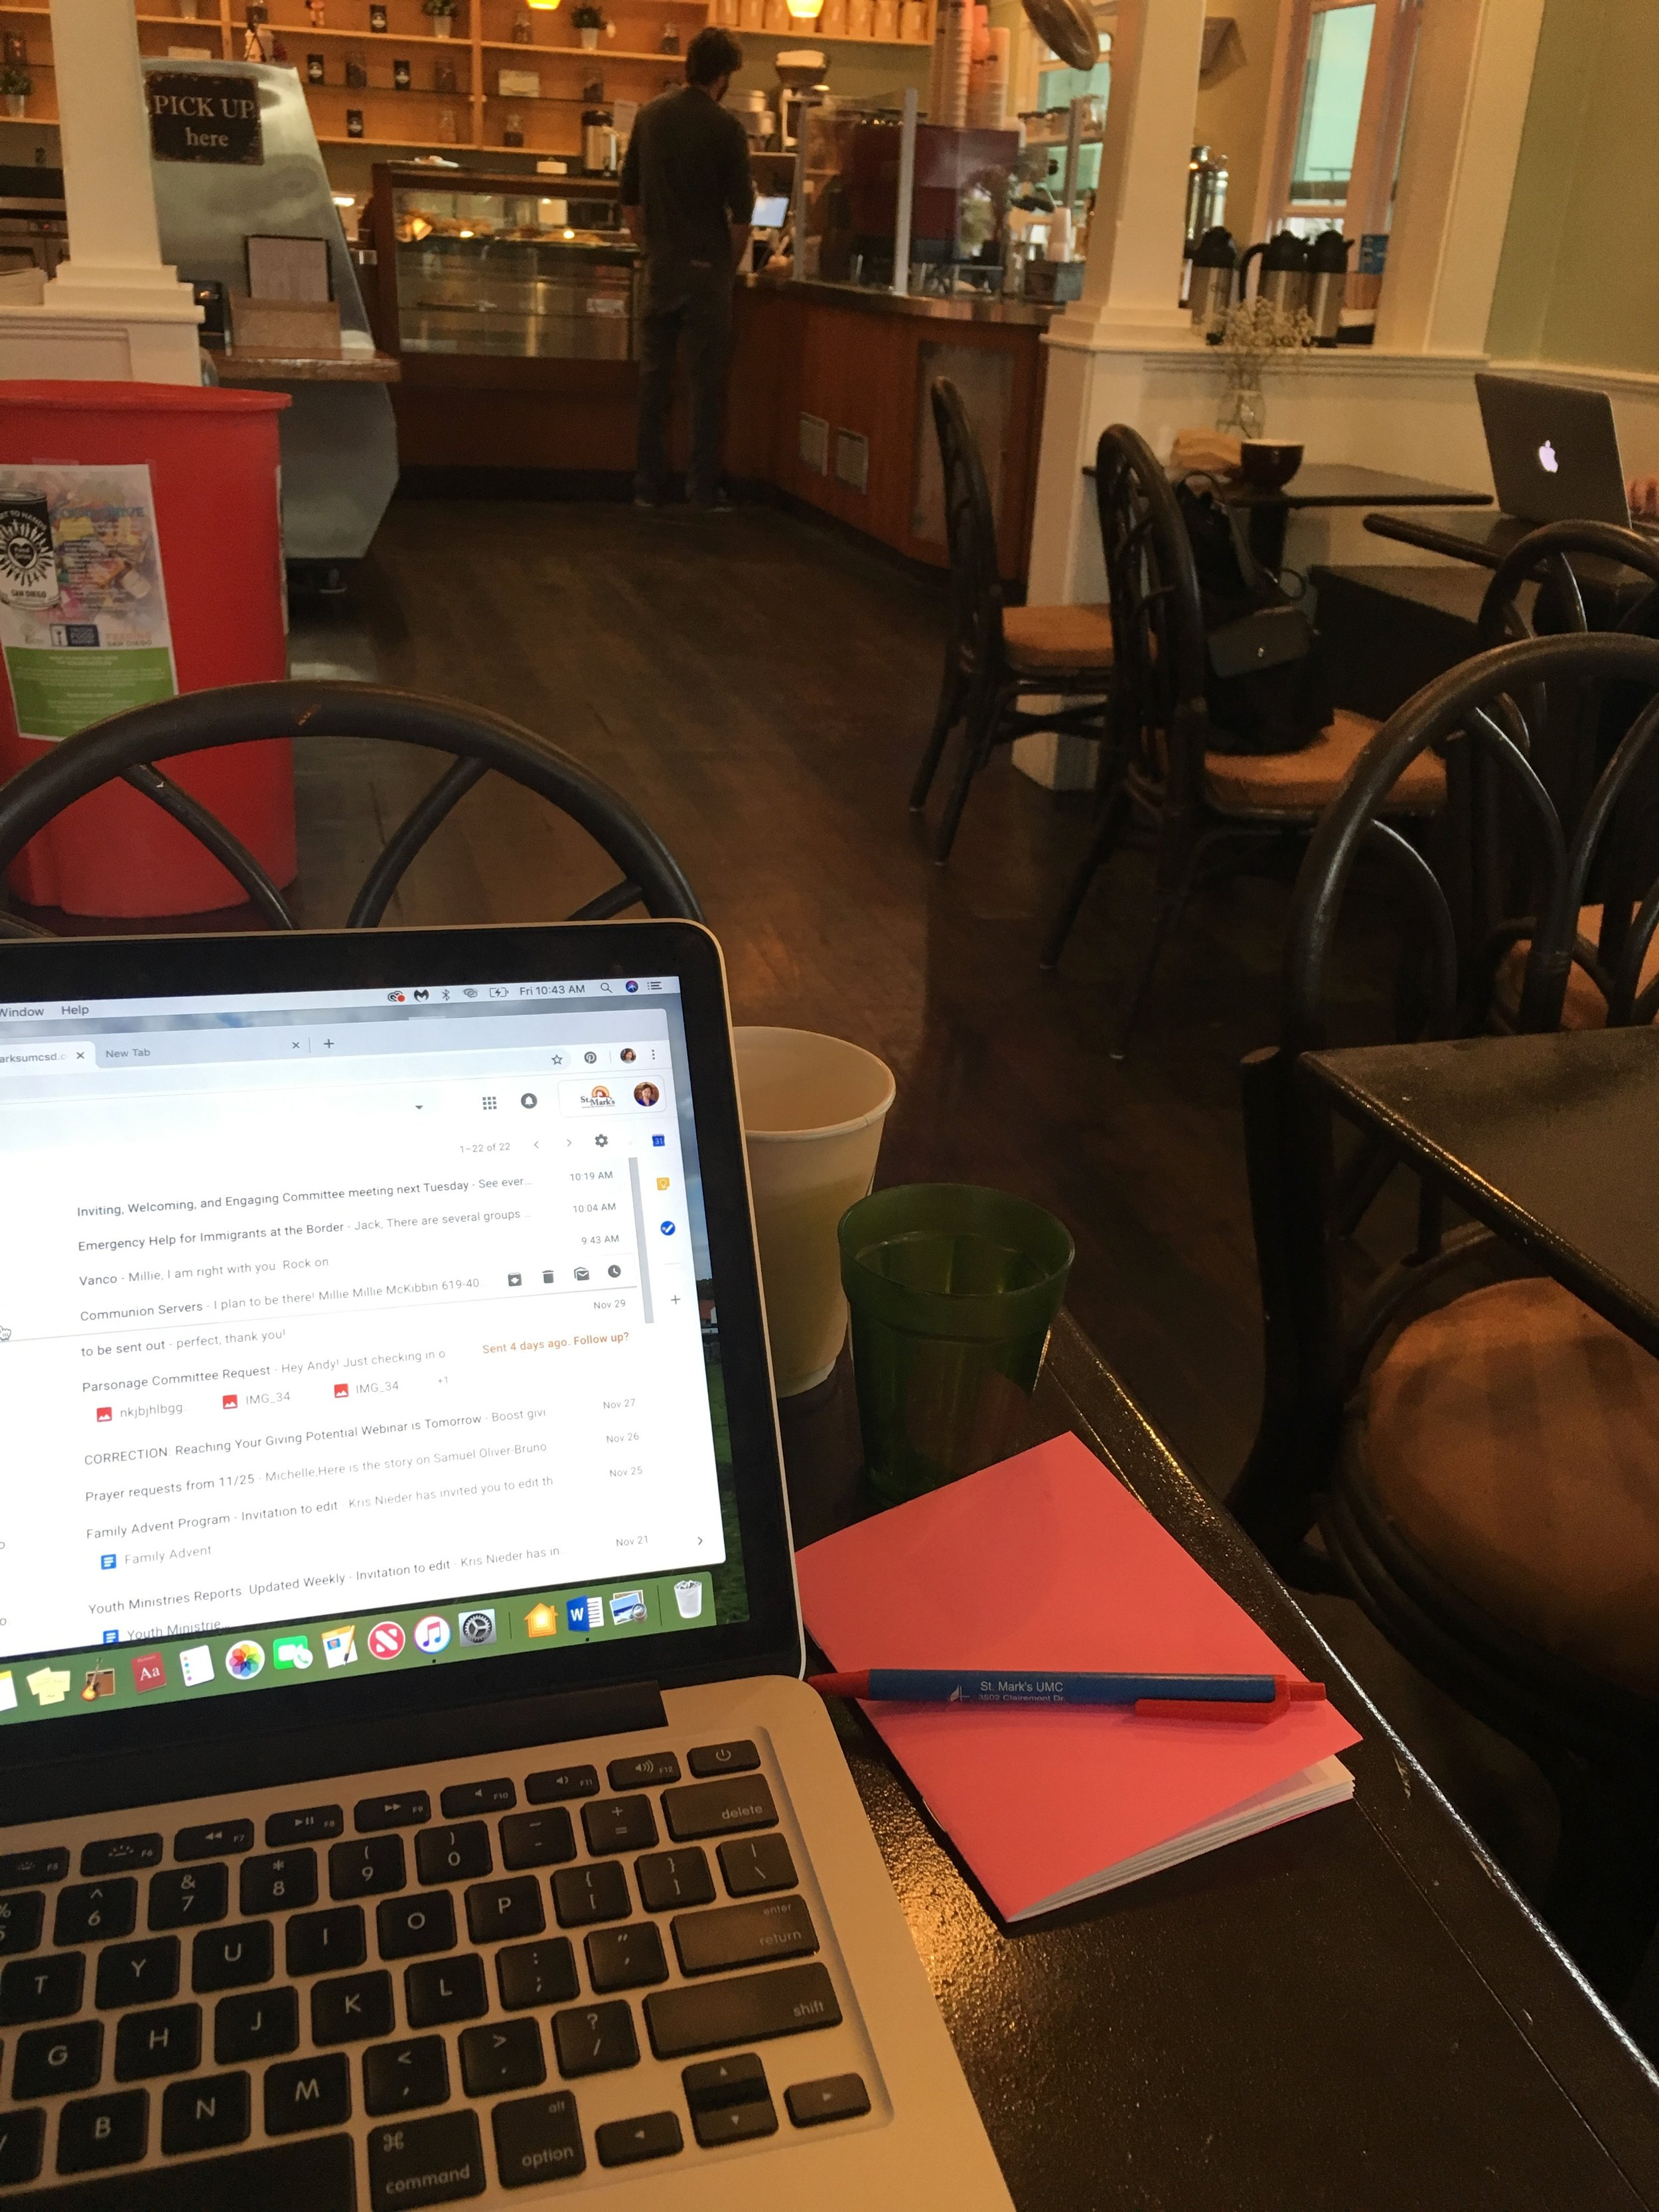 Got some good work done at my favorite coffee shop, Brick and Bell in Pacific Beach.